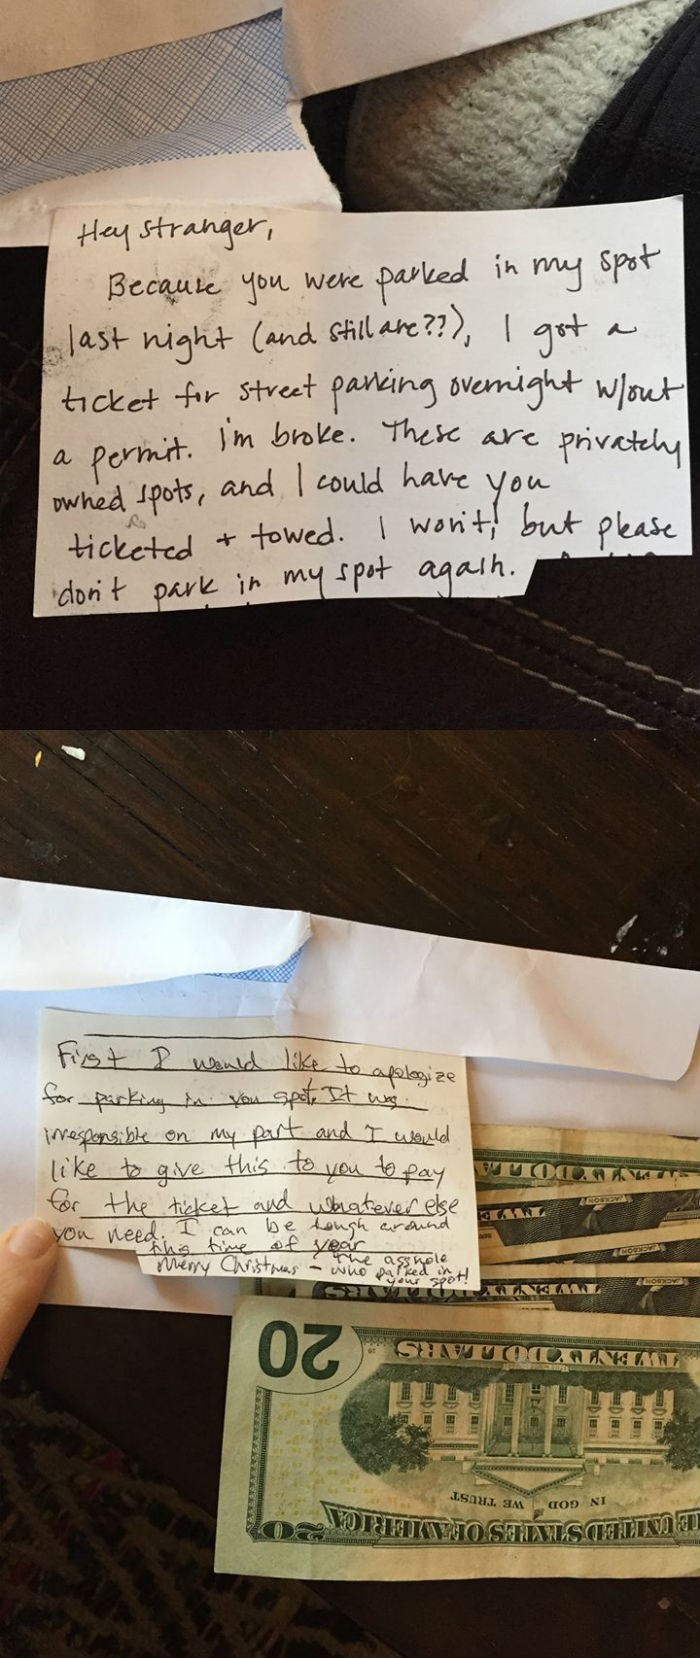 win stranger doesn't tow car and guy returns kindness by paying parking ticket